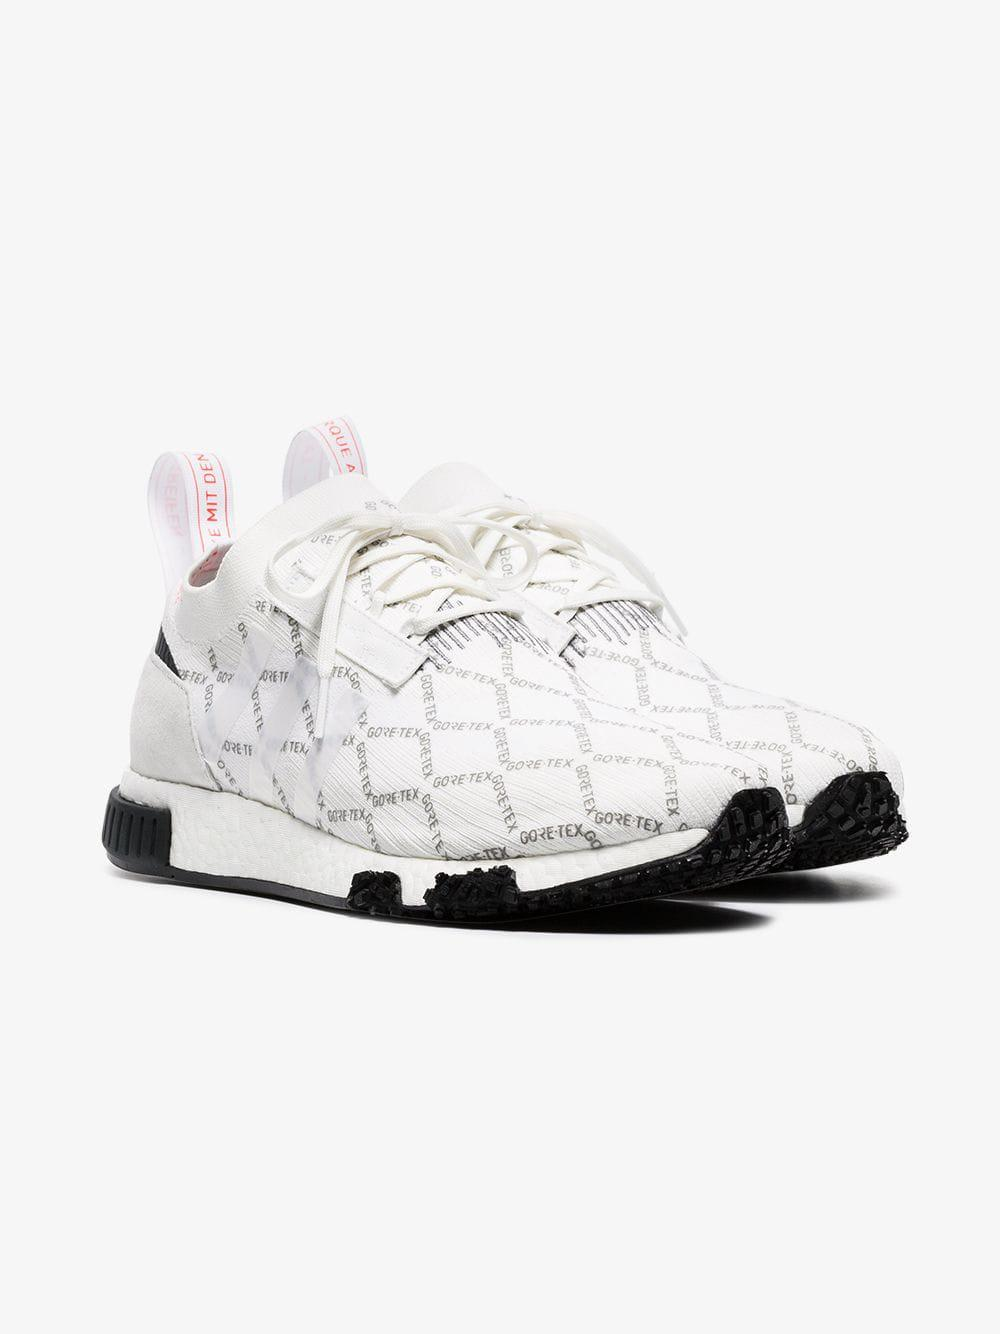 c791abc4cf710 Lyst - adidas White Gtx Racer Nmd Trainers in White for Men